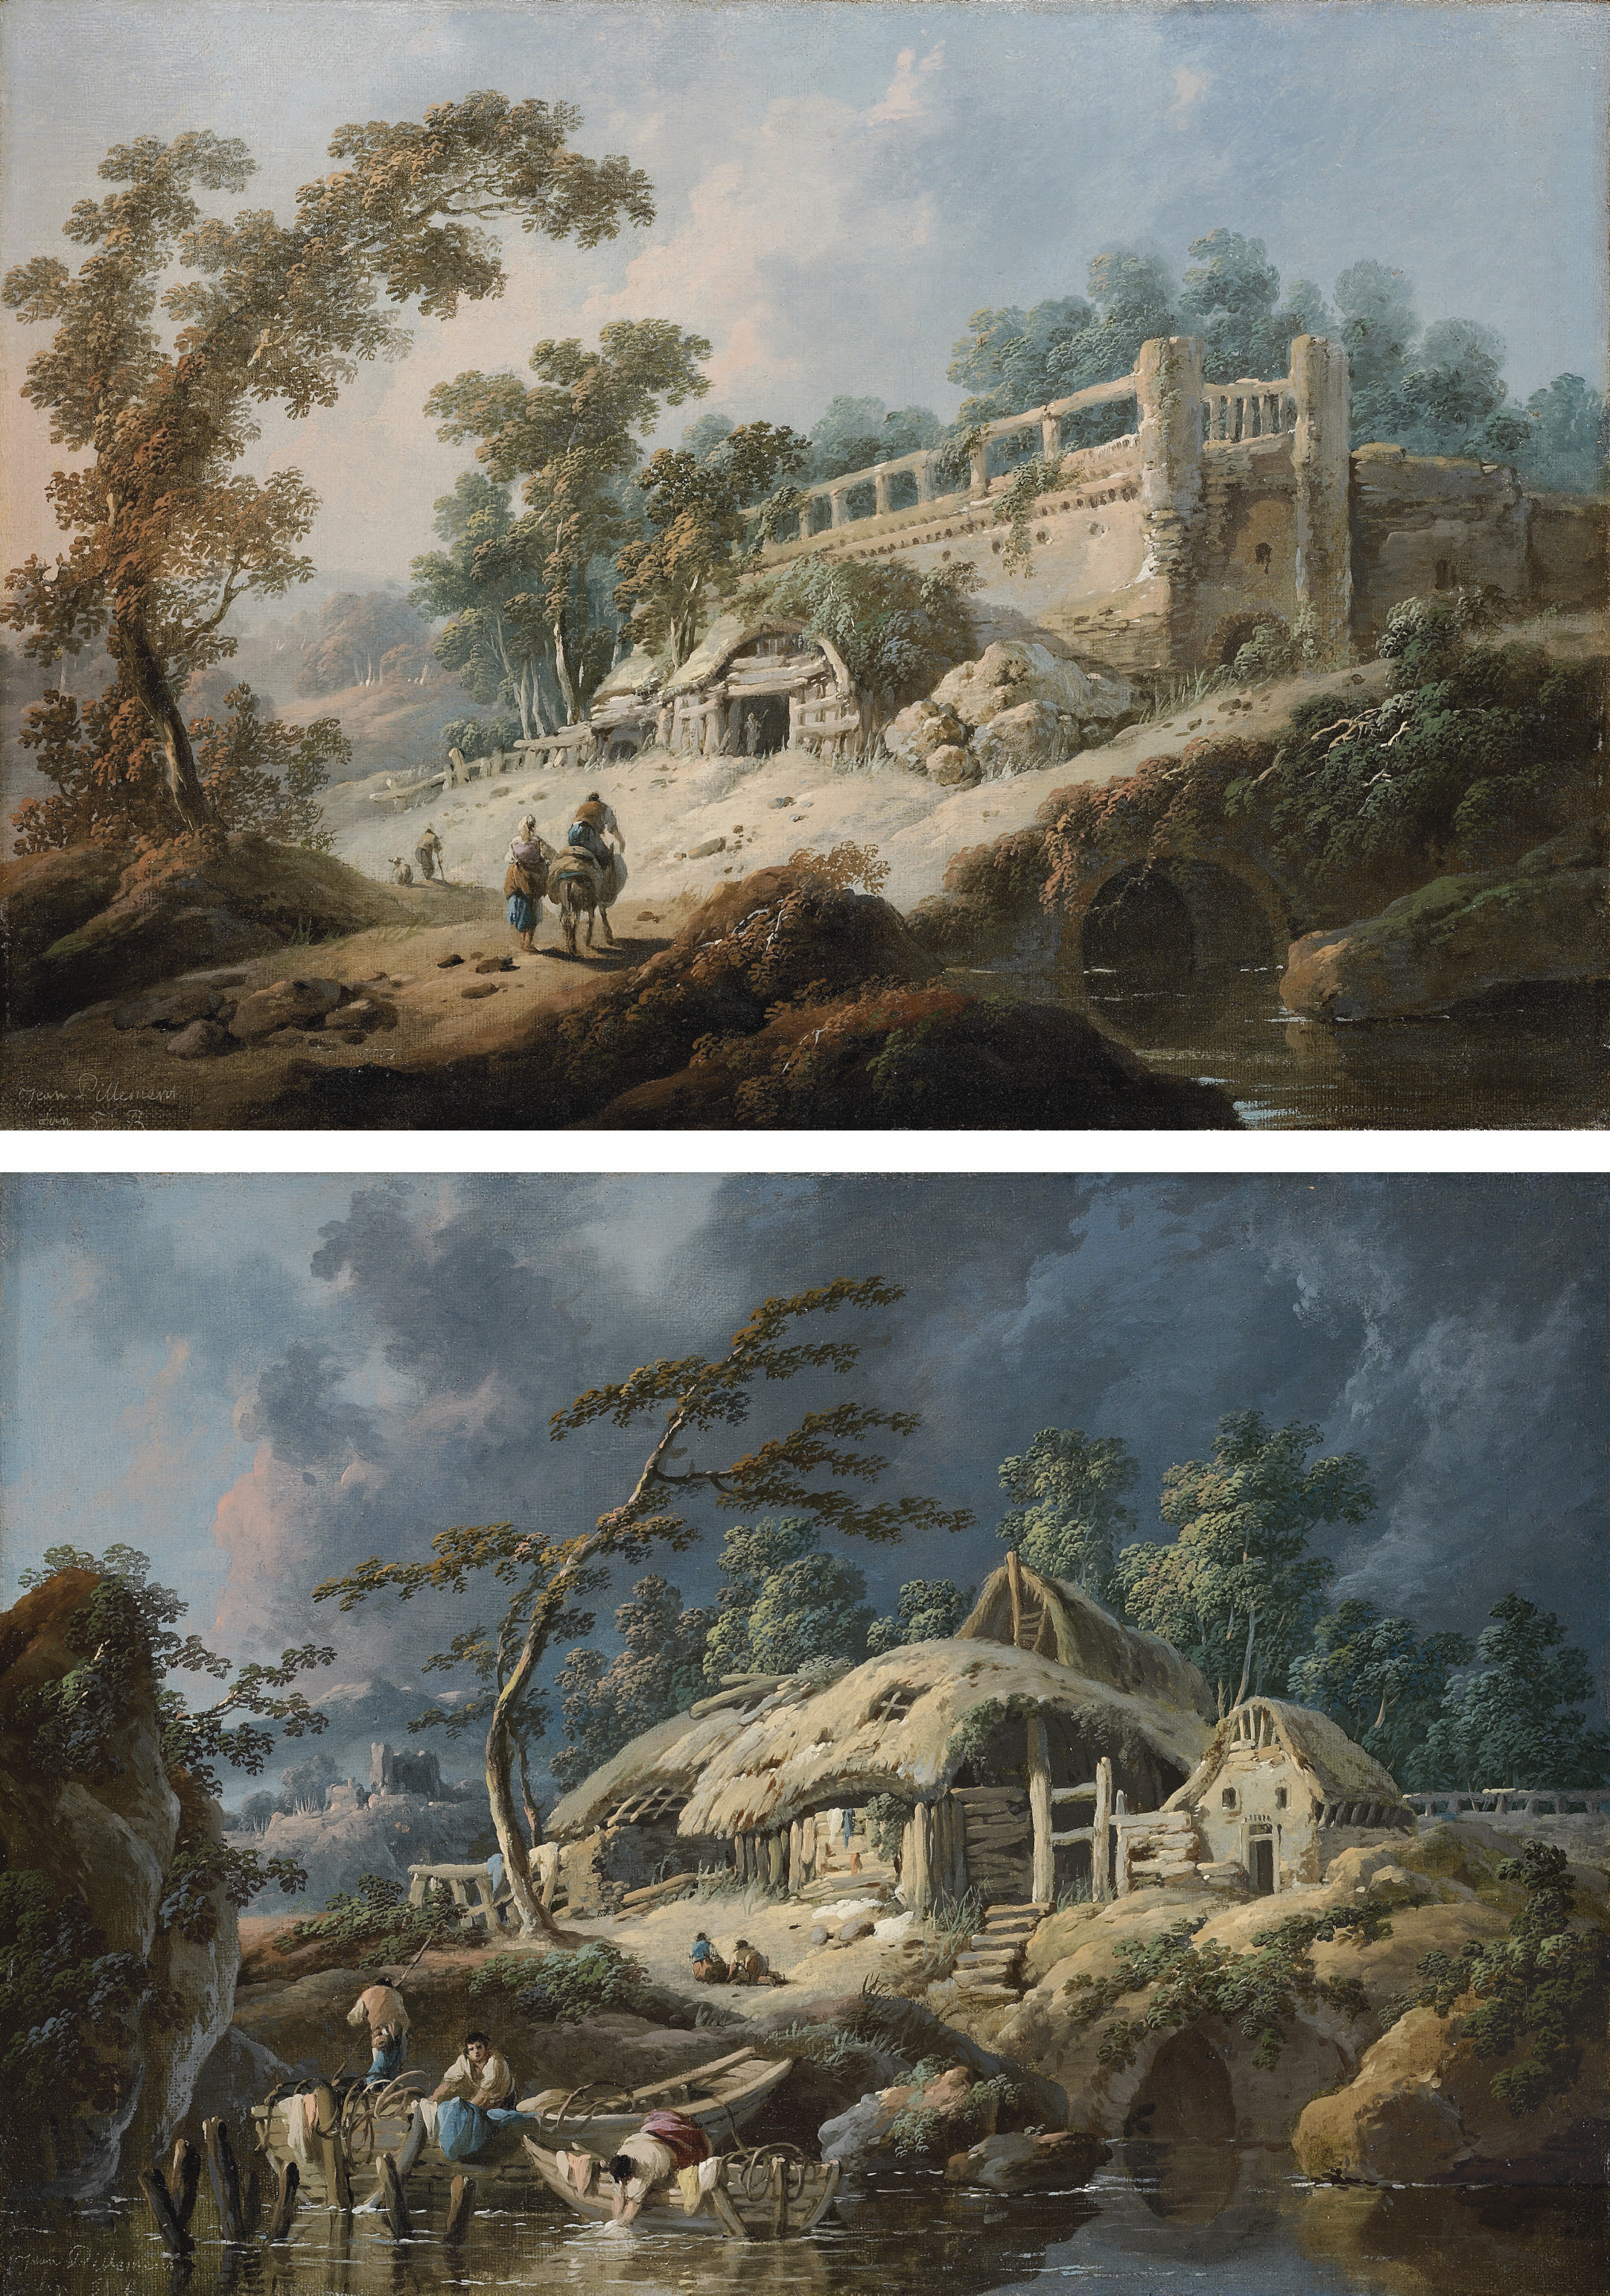 Dawn: A river landscape with travellers on a path, approaching a cottage set against classical ruins; and Dusk: A river landscape with boatmen tying up at a river bank near a rustic cottage